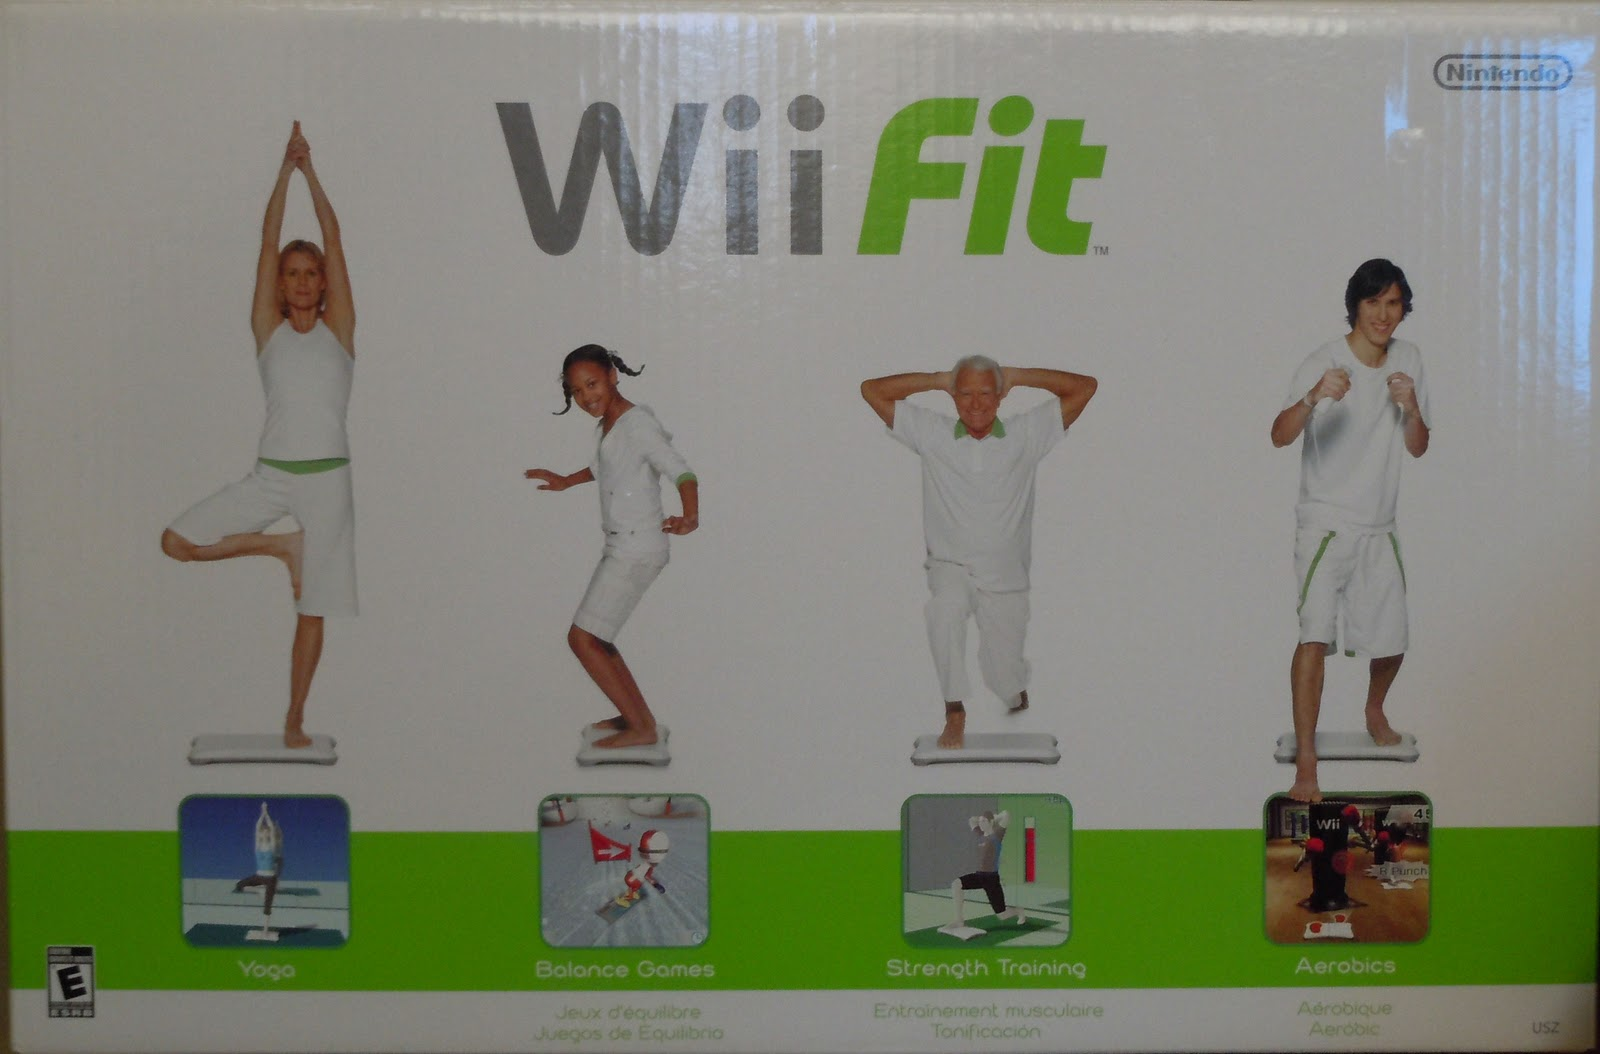 Video Games Are For Everyone: Not Just Fun And Games - Wii Fit